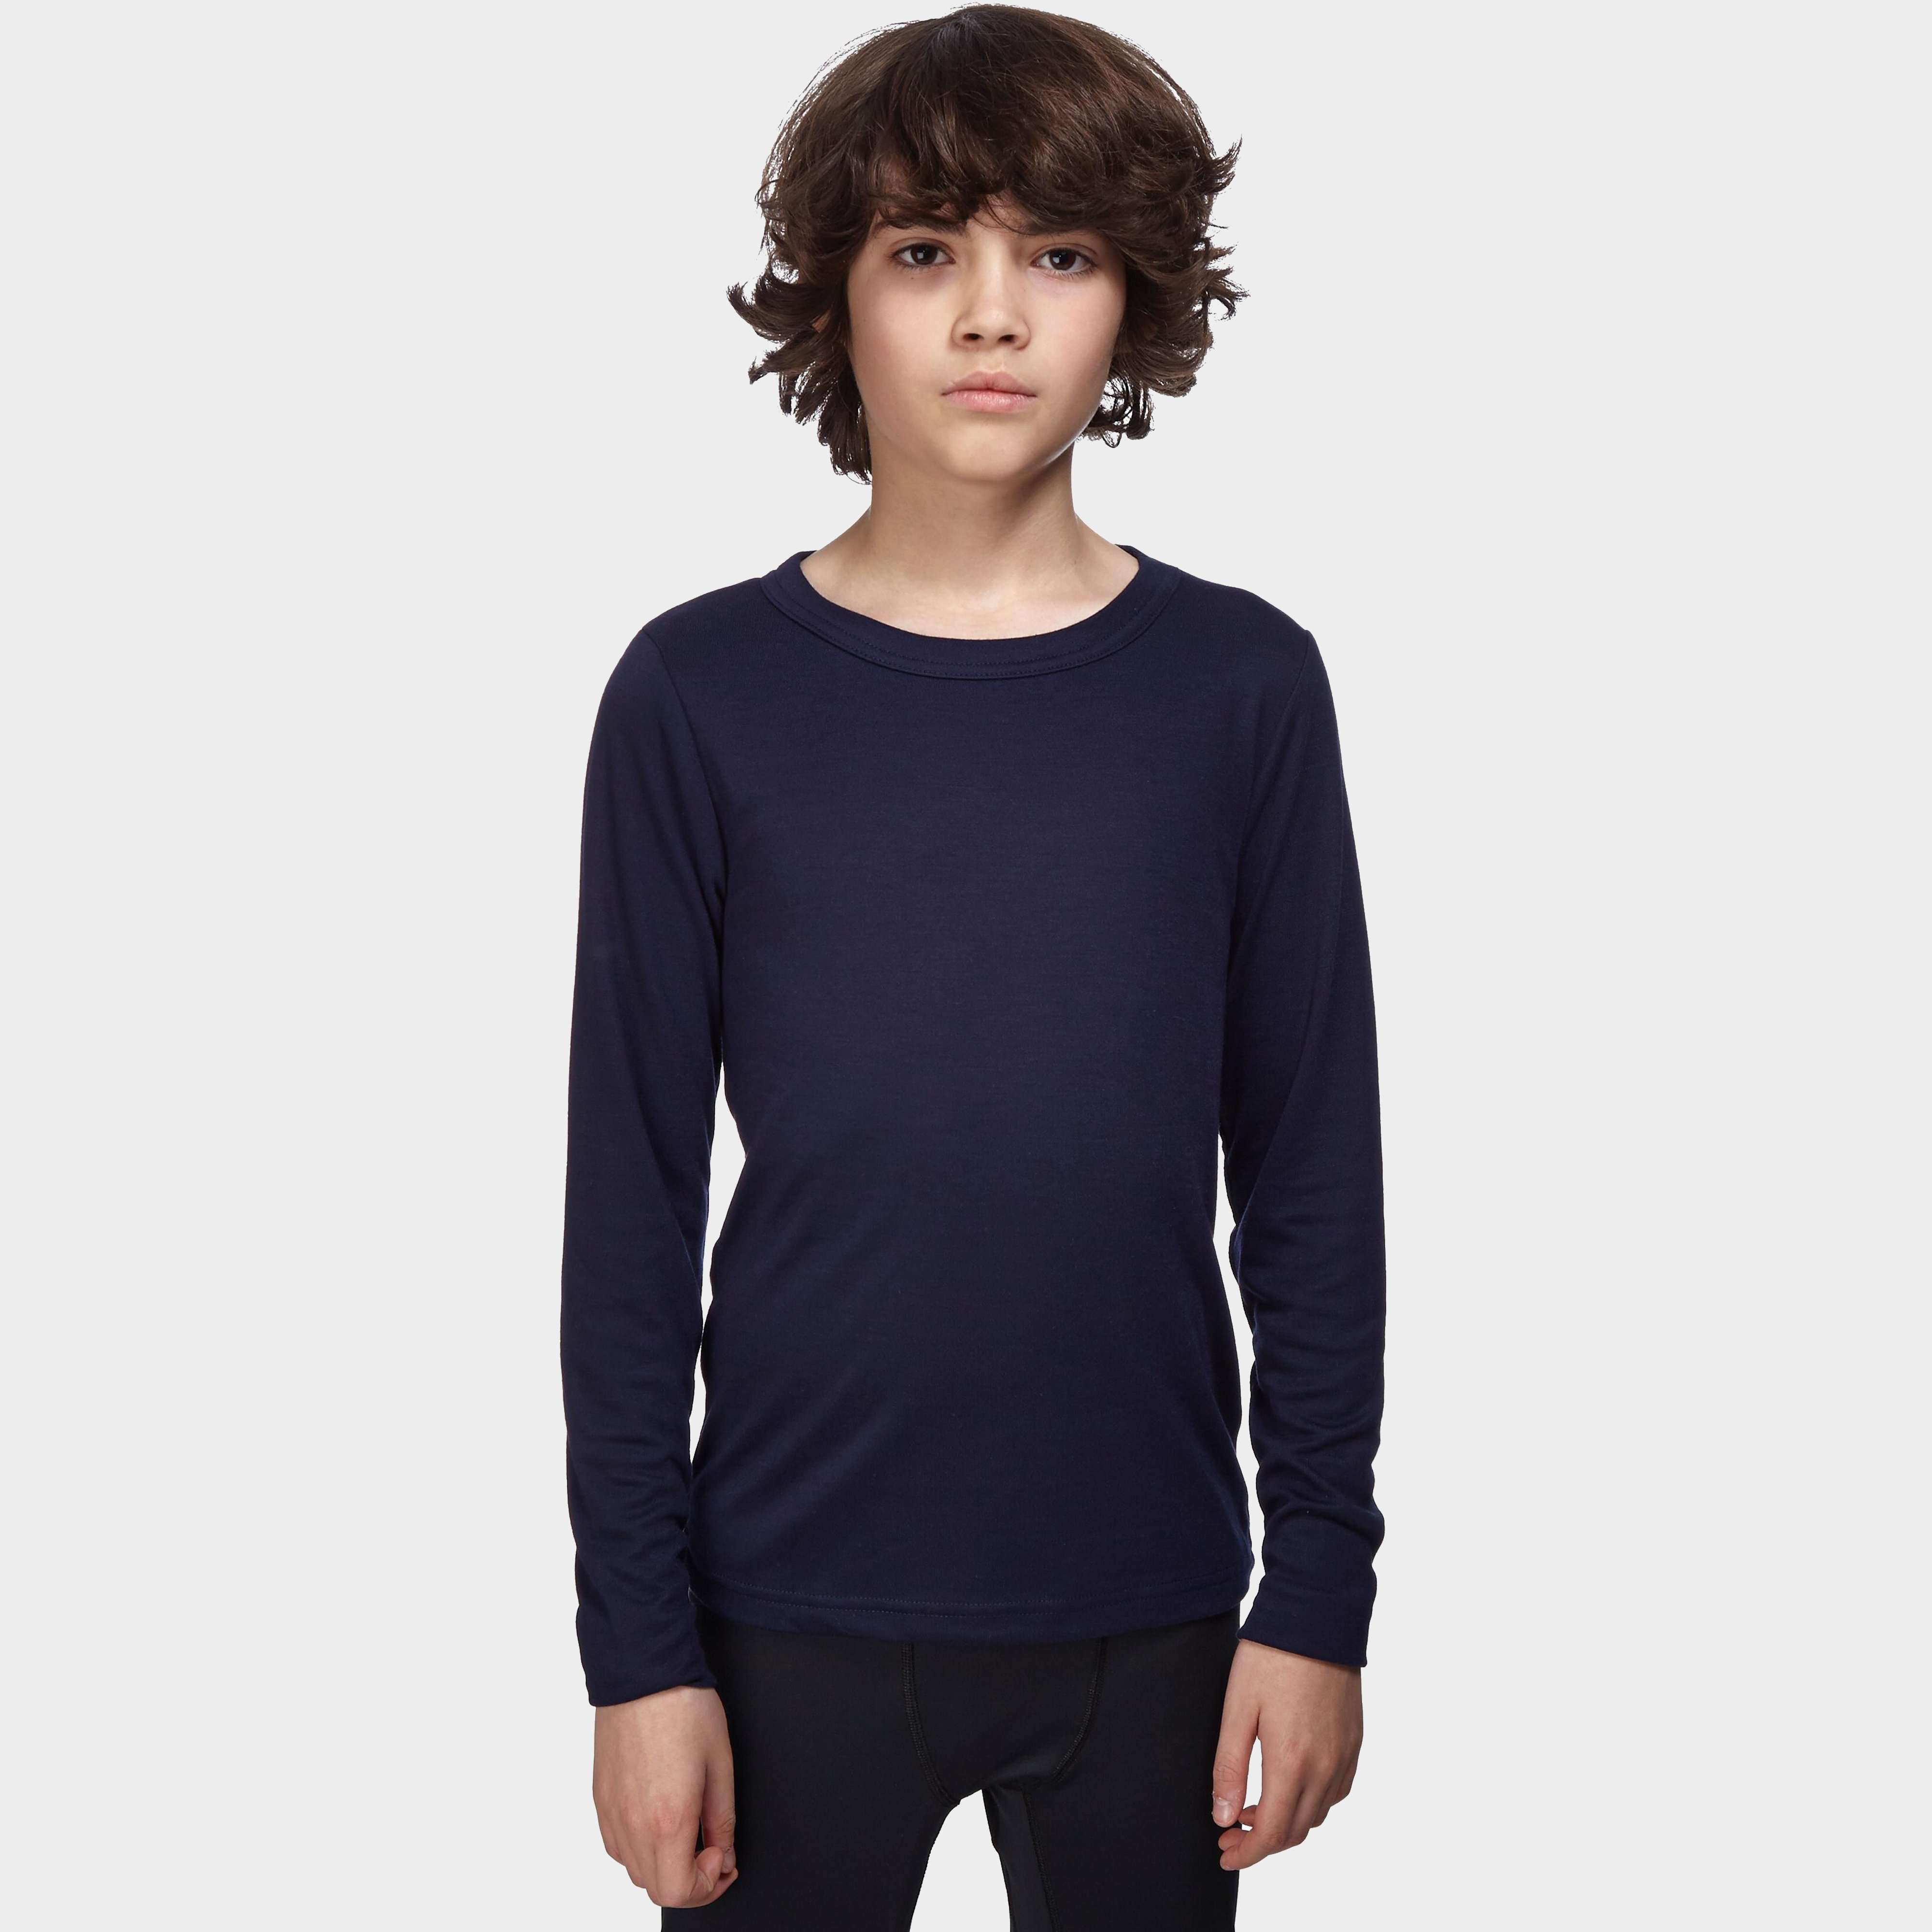 PETER STORM Kids' Unisex Long Sleeve Thermal Crew Baselayer Top